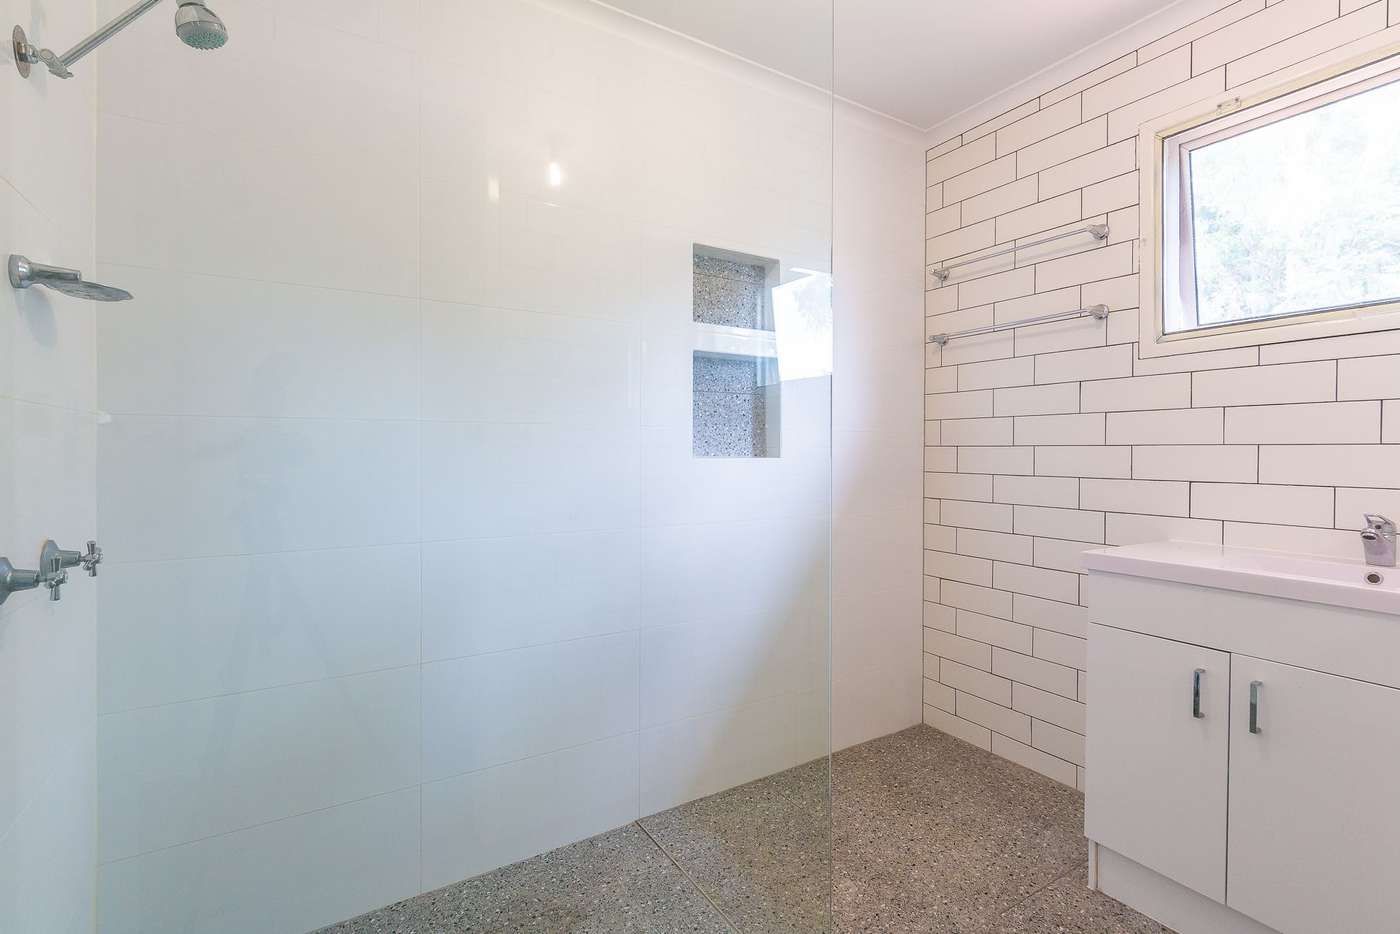 Seventh view of Homely house listing, 28 Mcpherson Street, Kippa-ring QLD 4021